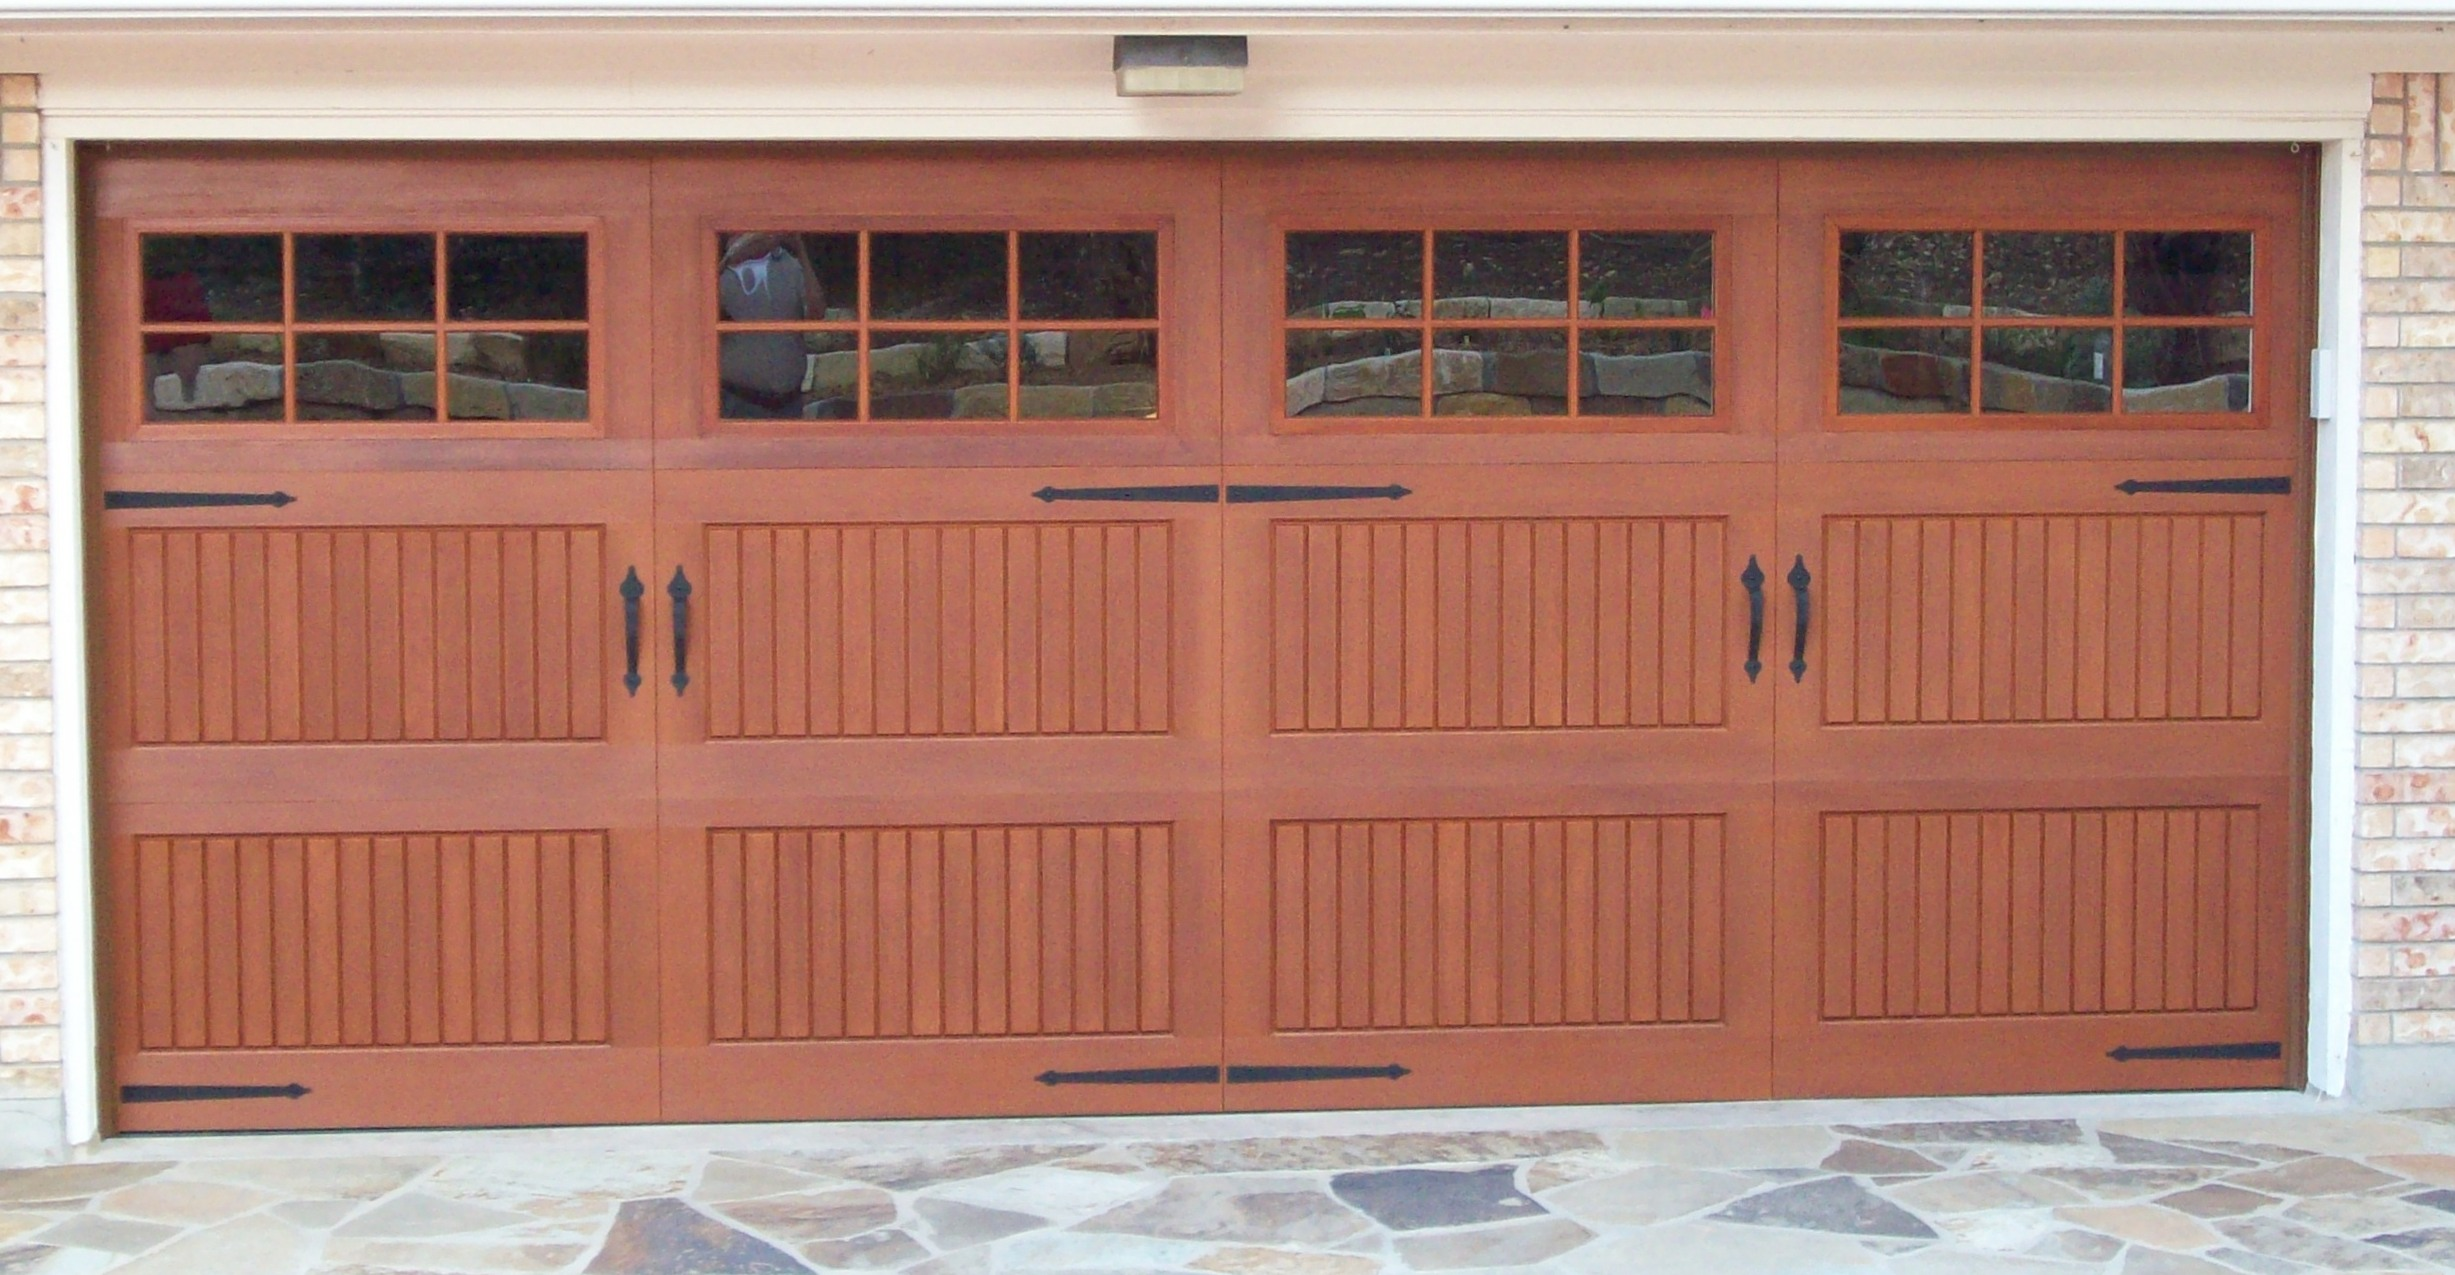 1275 #8C523F  Crawford Door Co $ 85 Garage Door Tune Up Hollywood Crawford Door Co wallpaper Best Deal On Garage Doors 37552455